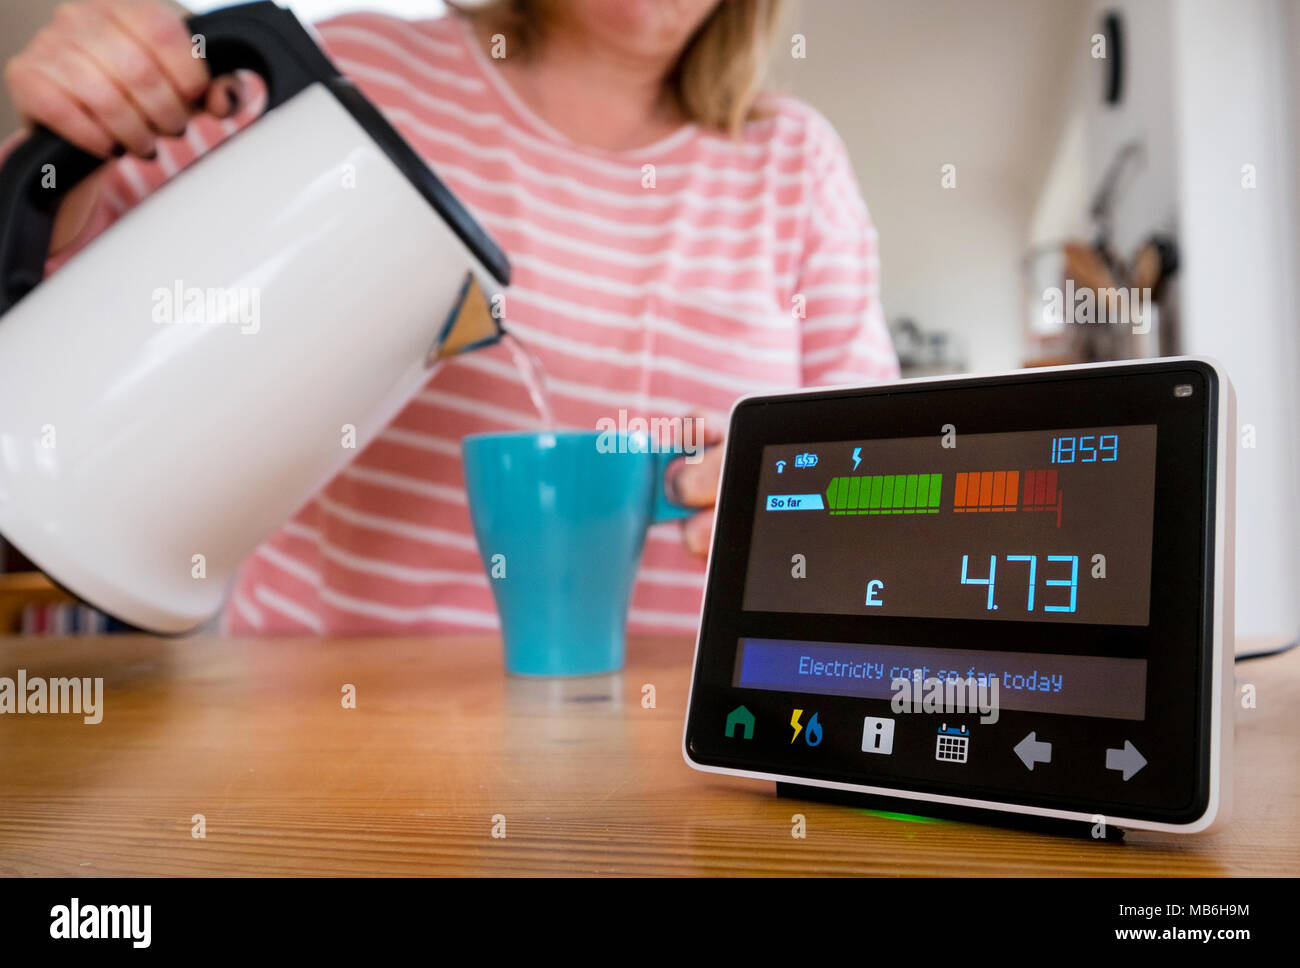 Energy Monitor ( Smart Metre )in the kitchen of a UK home as a woman makes a cup of tea - Stock Image